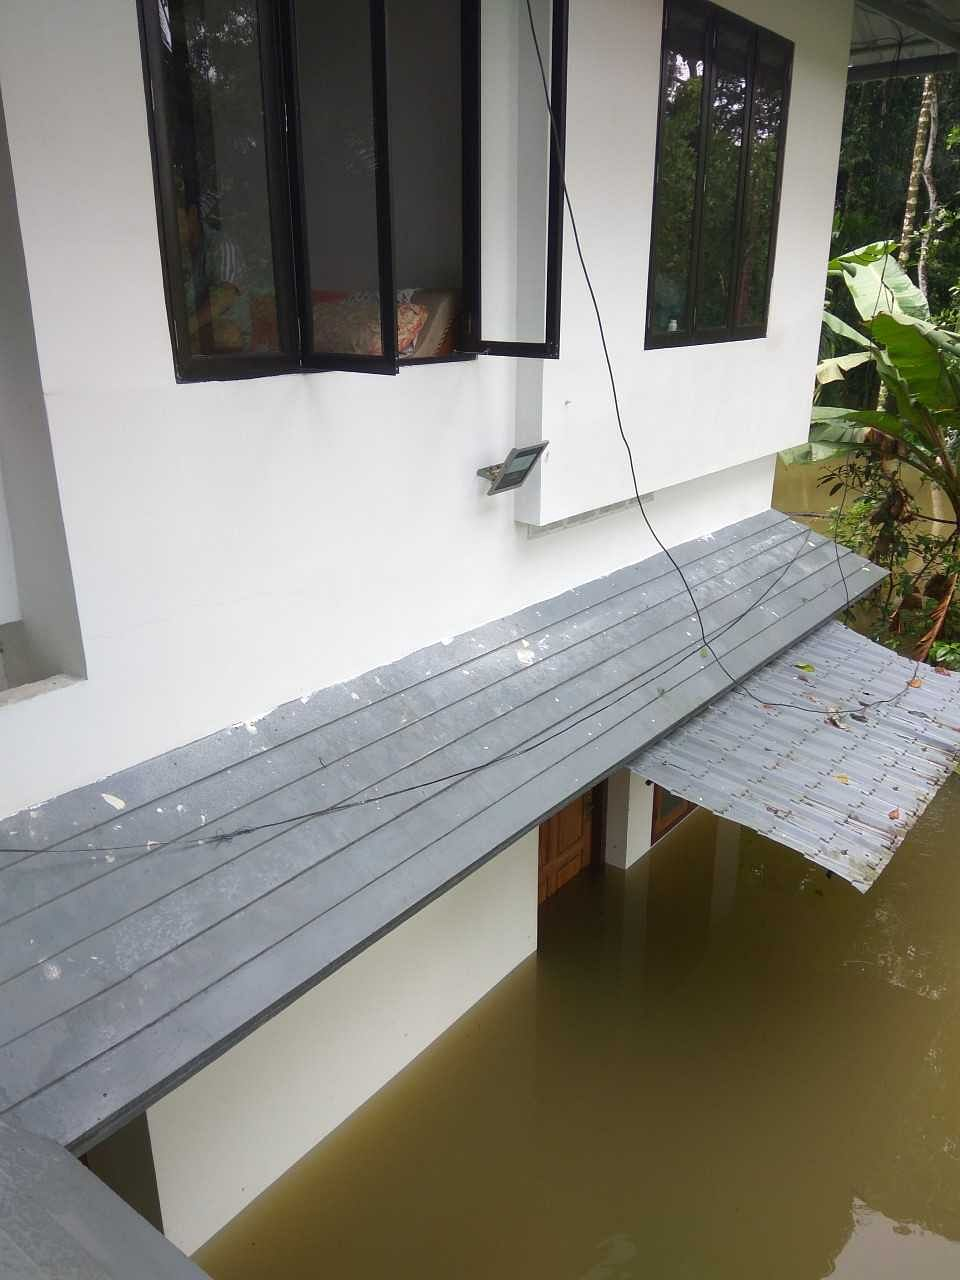 By the end of the day, water had entered the ground floor and we were stranded on the first floor.